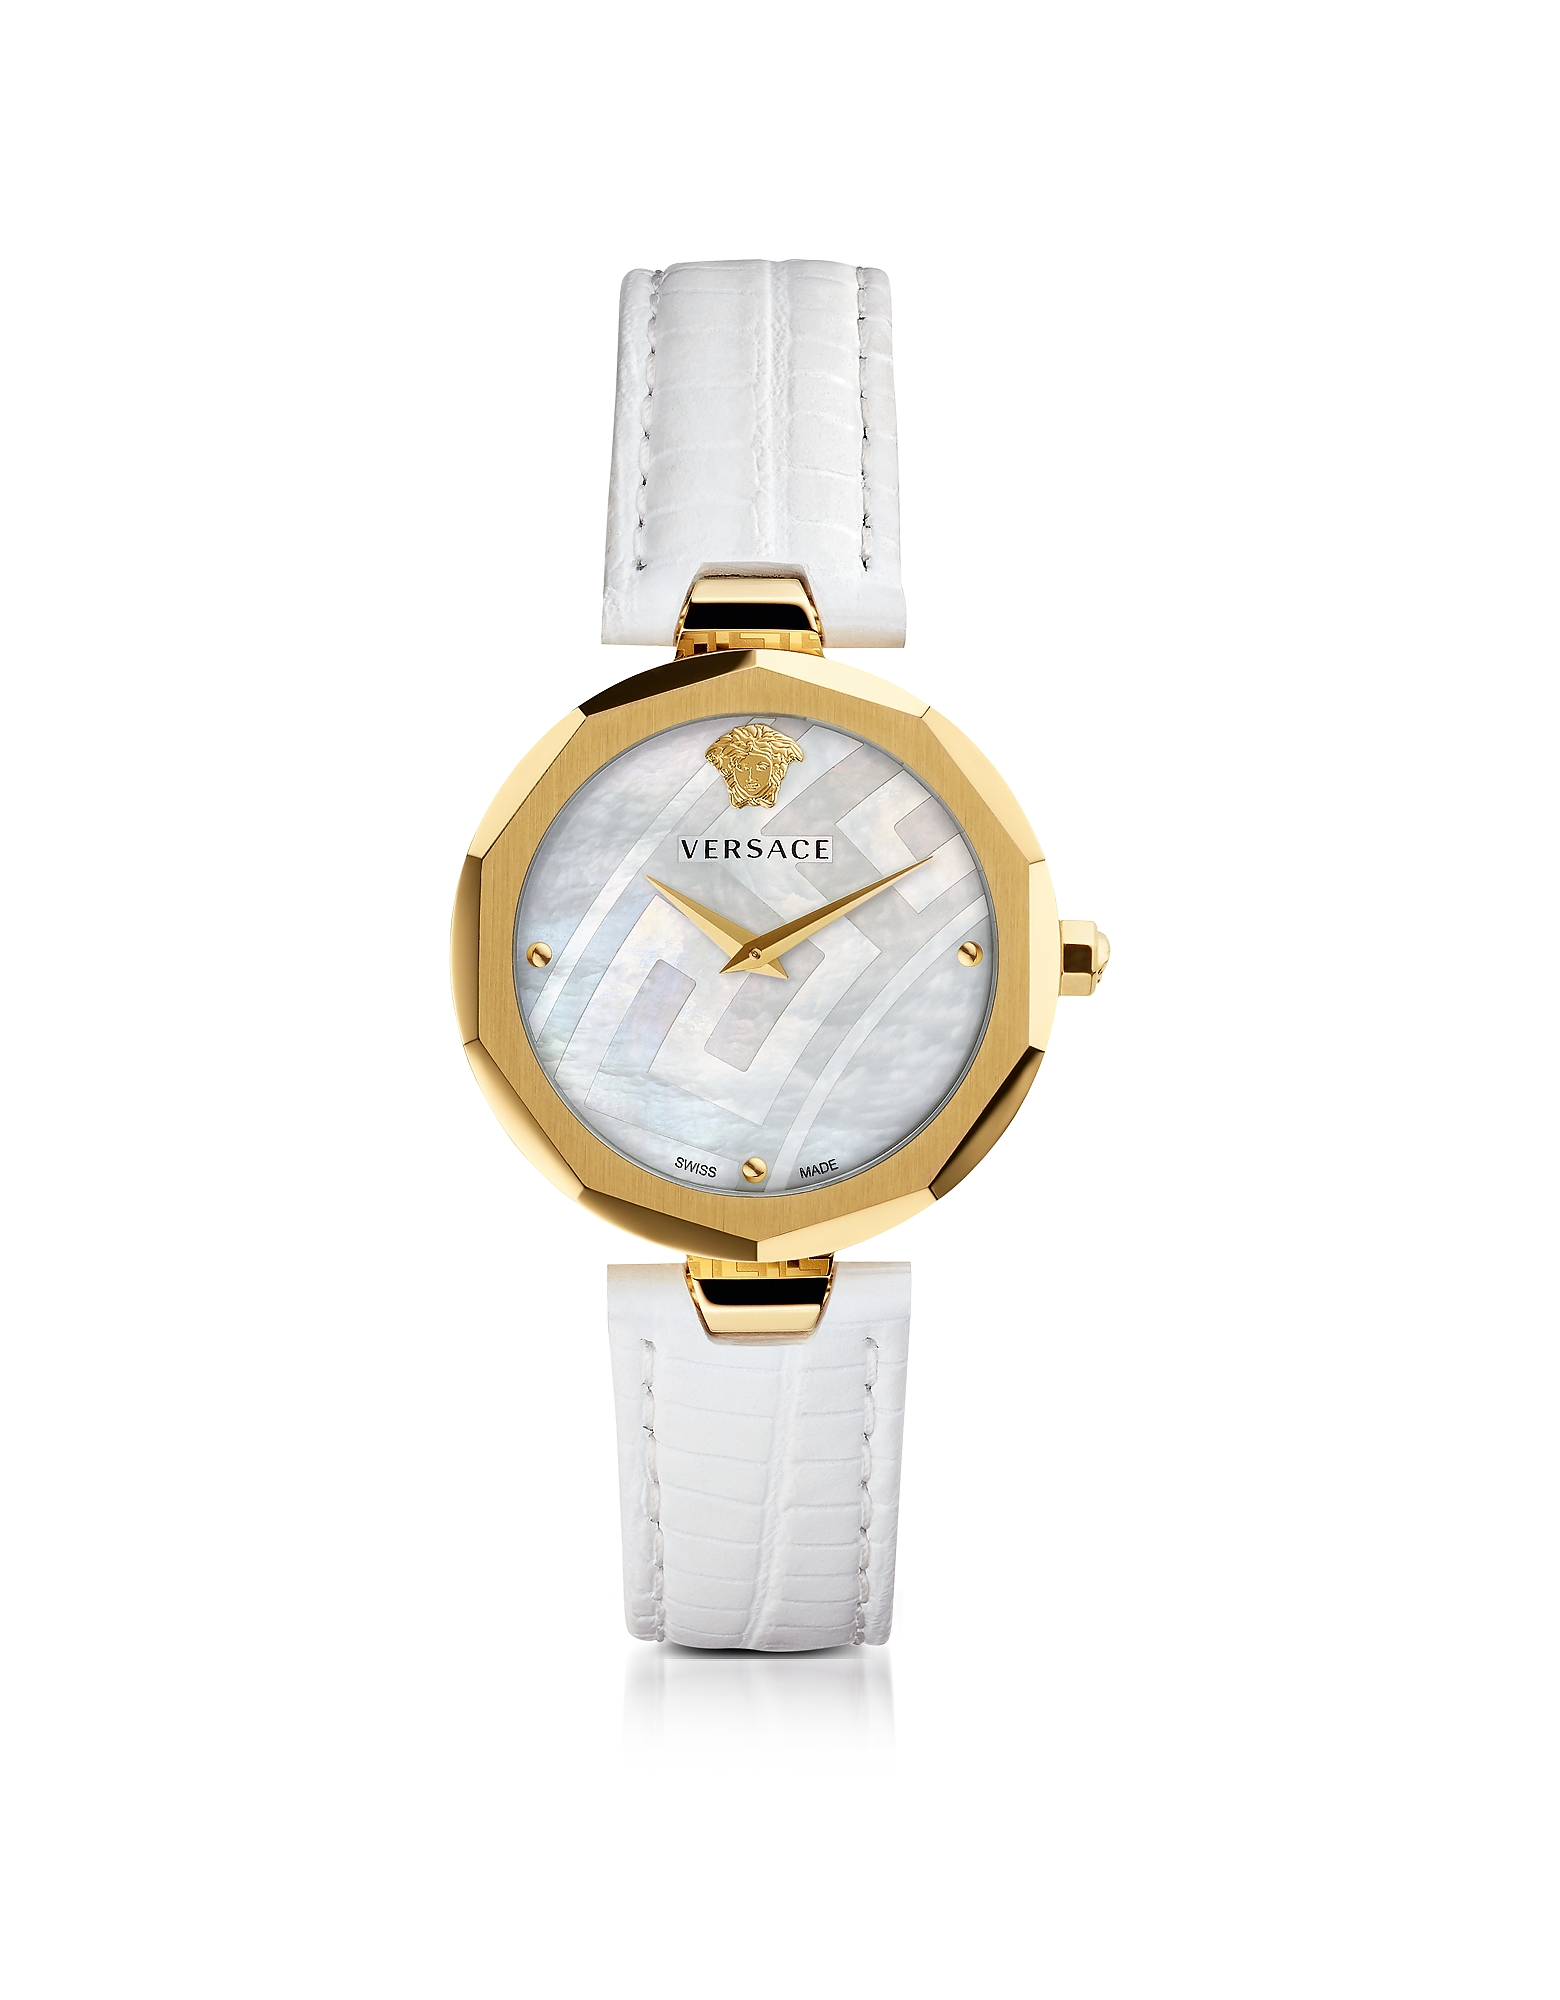 Versace Women's Watches, Idyia Decagonal White Women's Watch w/Greek Engraving